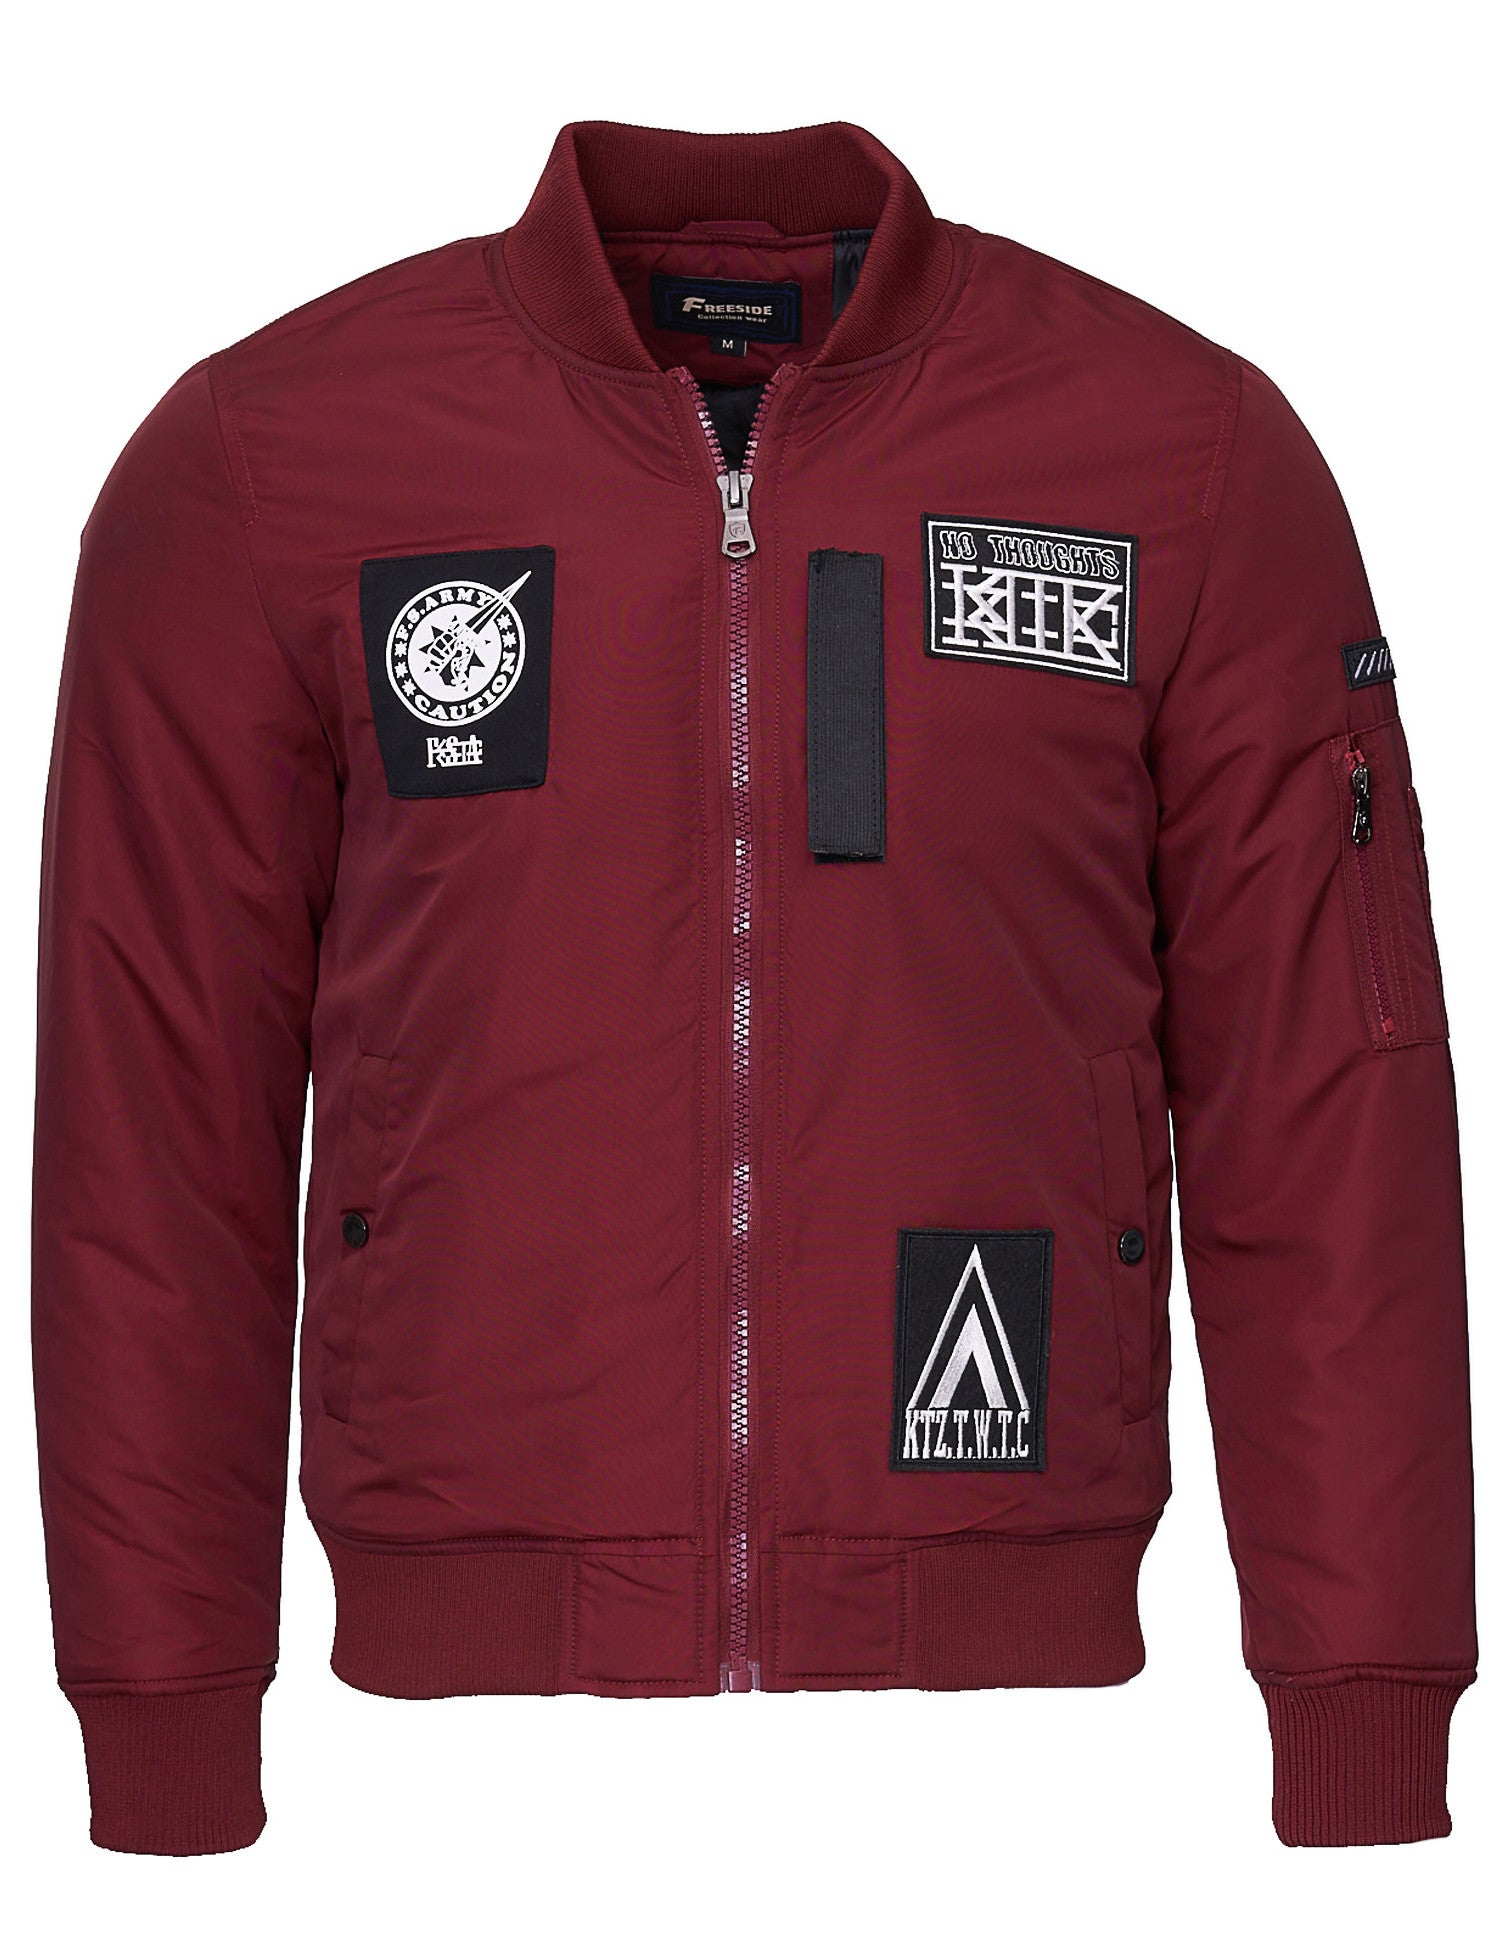 Free Side FS-1010 Bomber Jacket Red